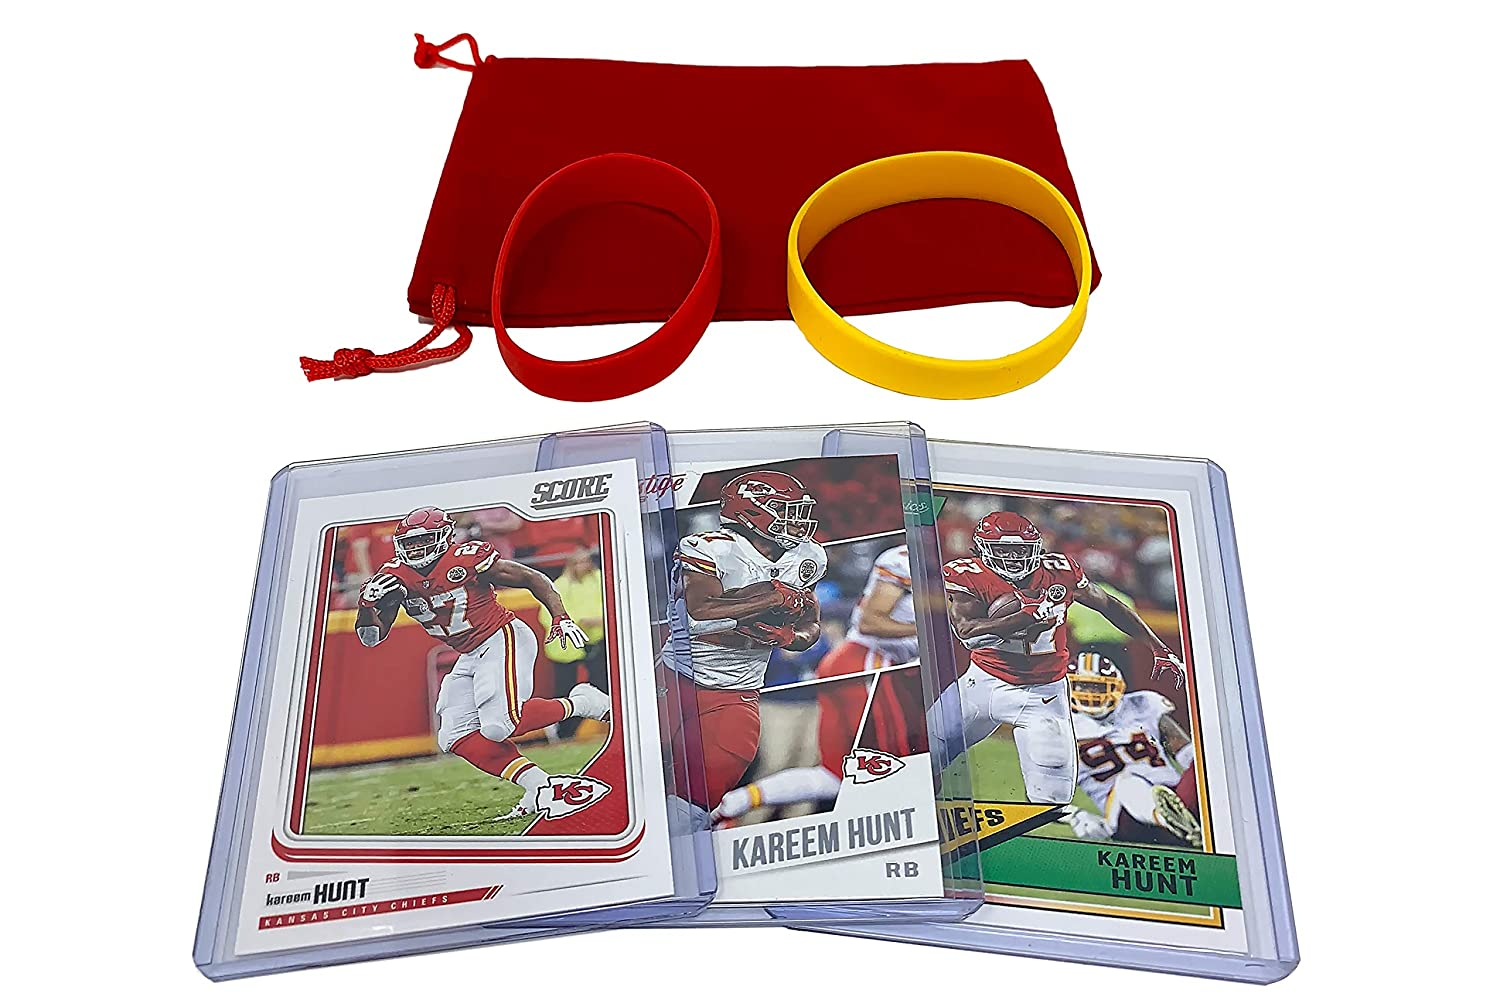 Kareem Hunt Football Cards (3) Assorted Bundle - Kansas City Chiefs Trading Card Gift Set Panini Bowman Topps